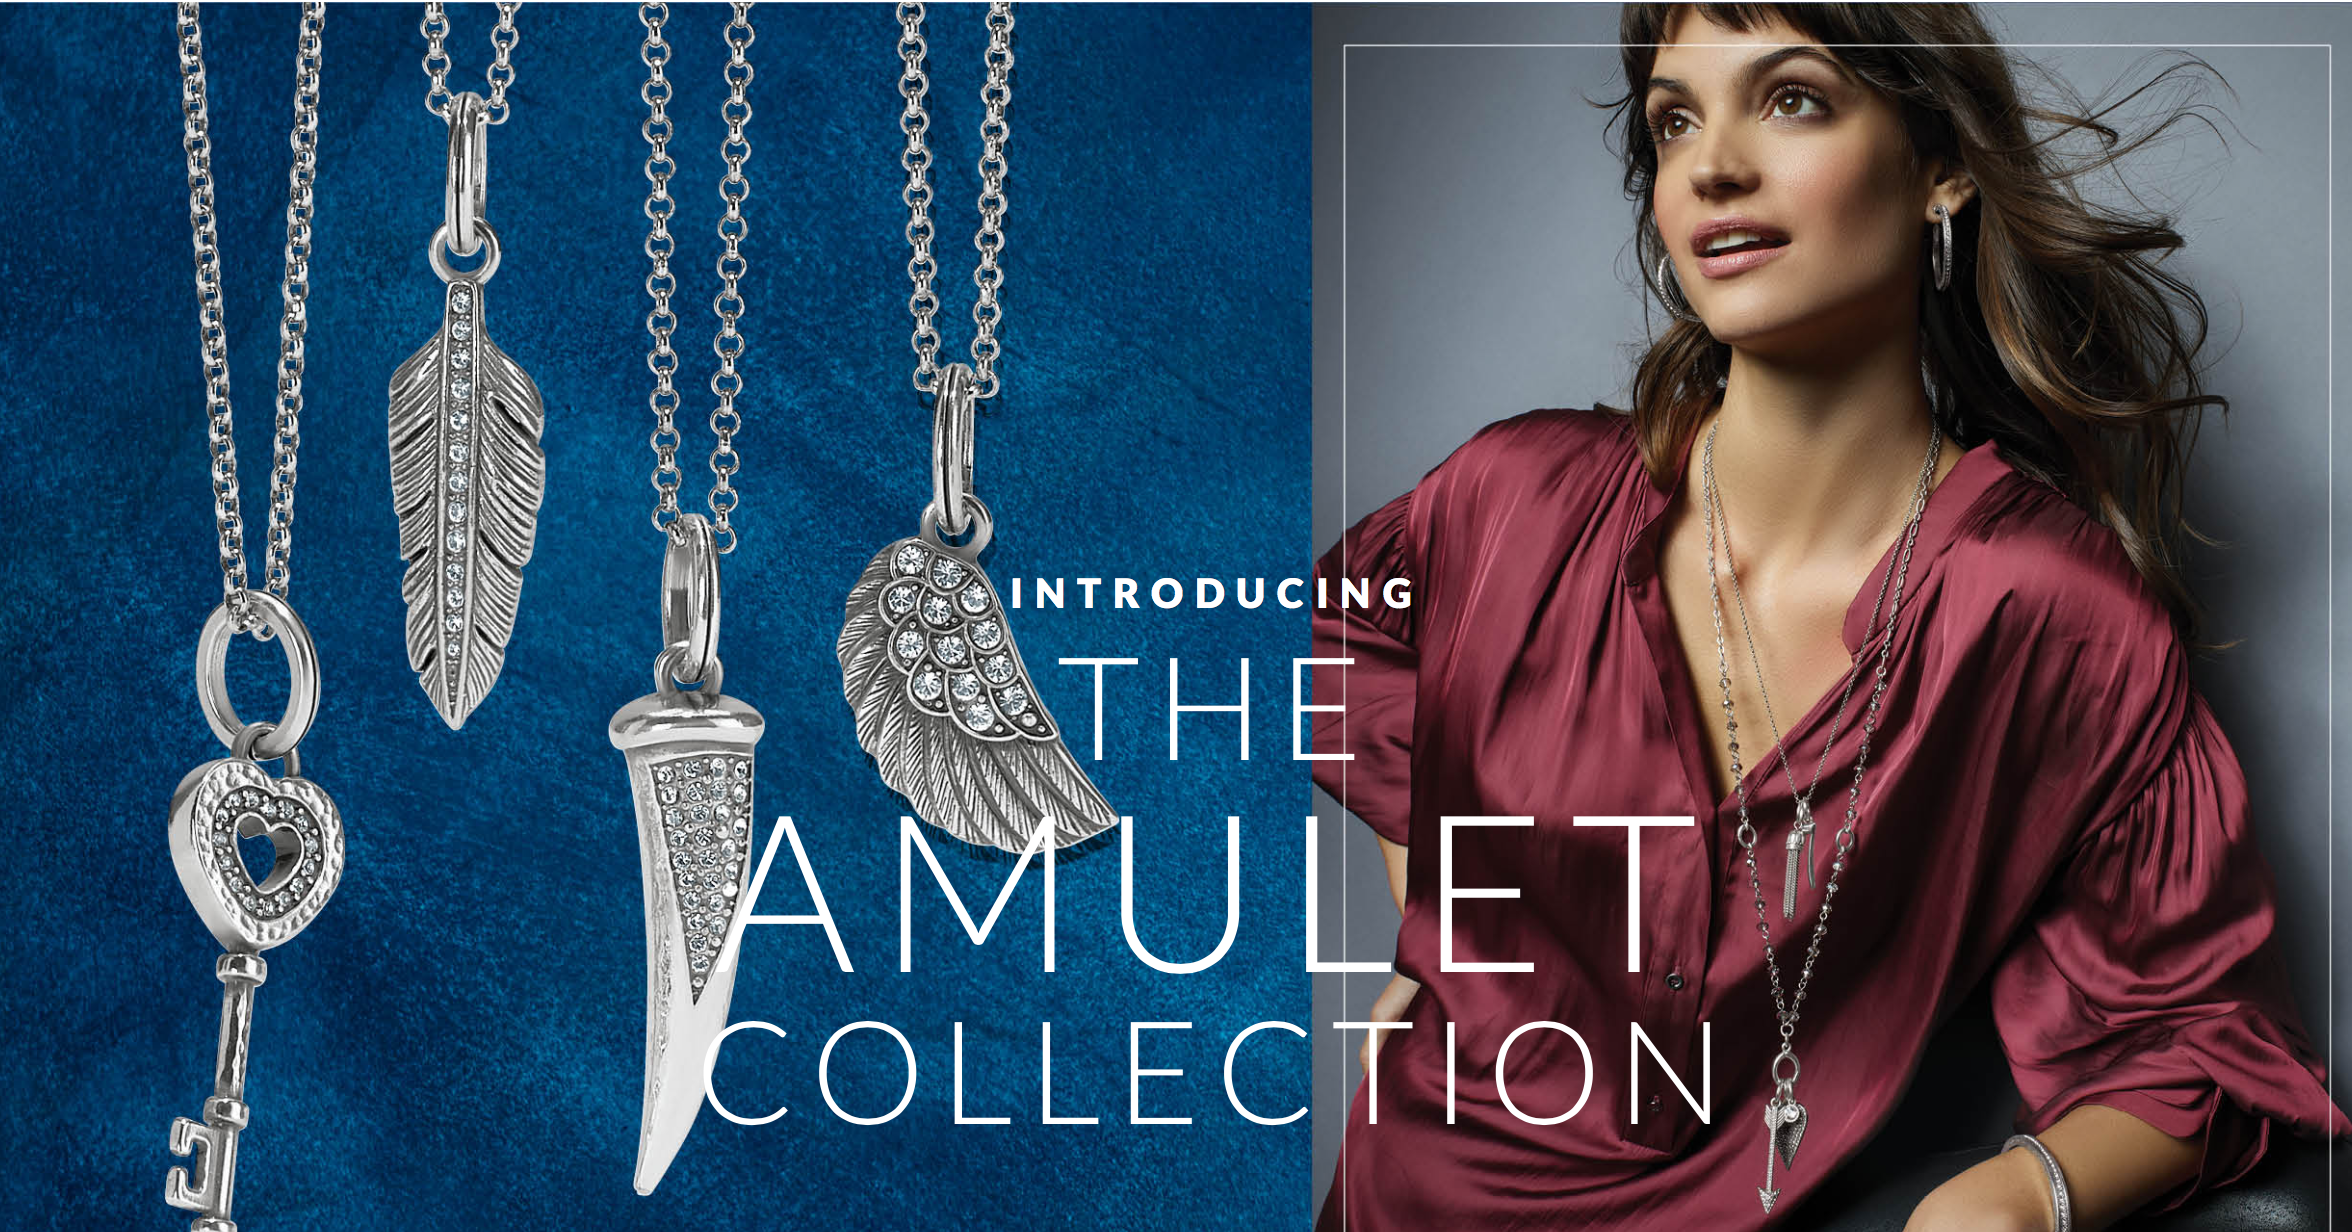 Brighton Amulet Collection at Panache at The Village Shops on Venetian Bay